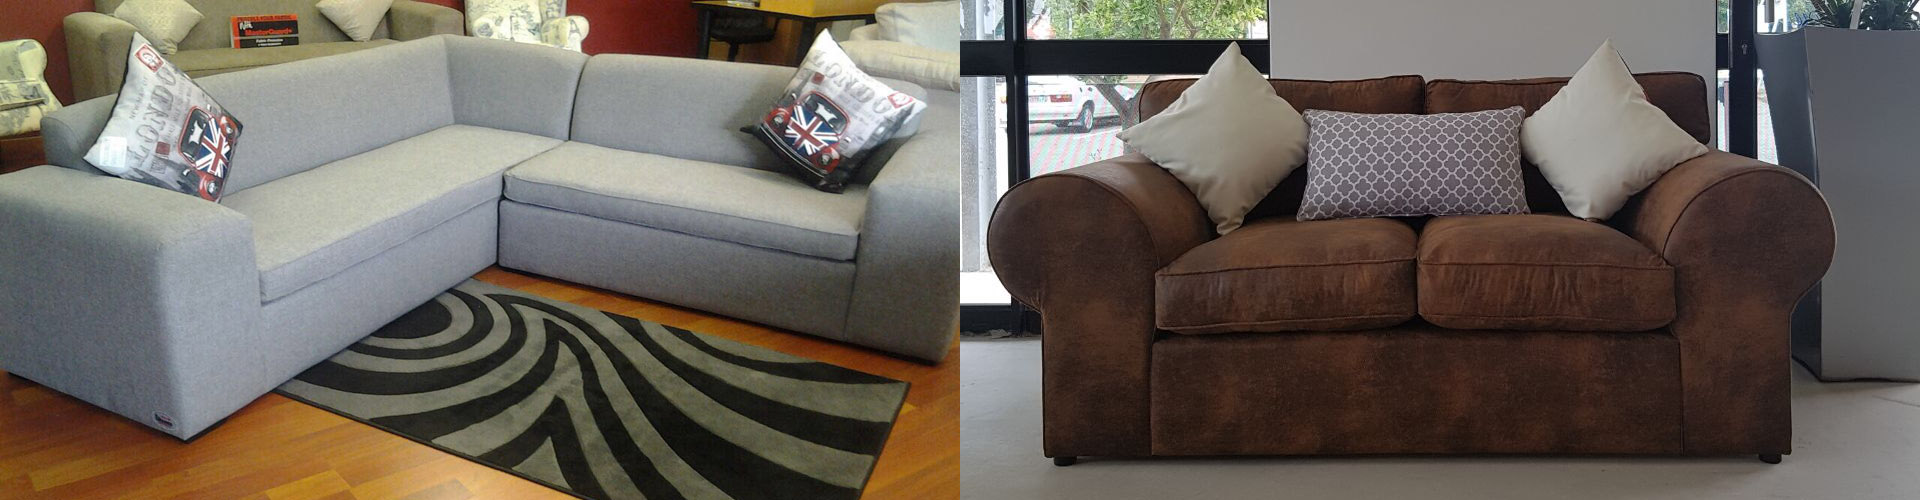 Lazeee Lounges Eastern Cape Designer Sofas We Are